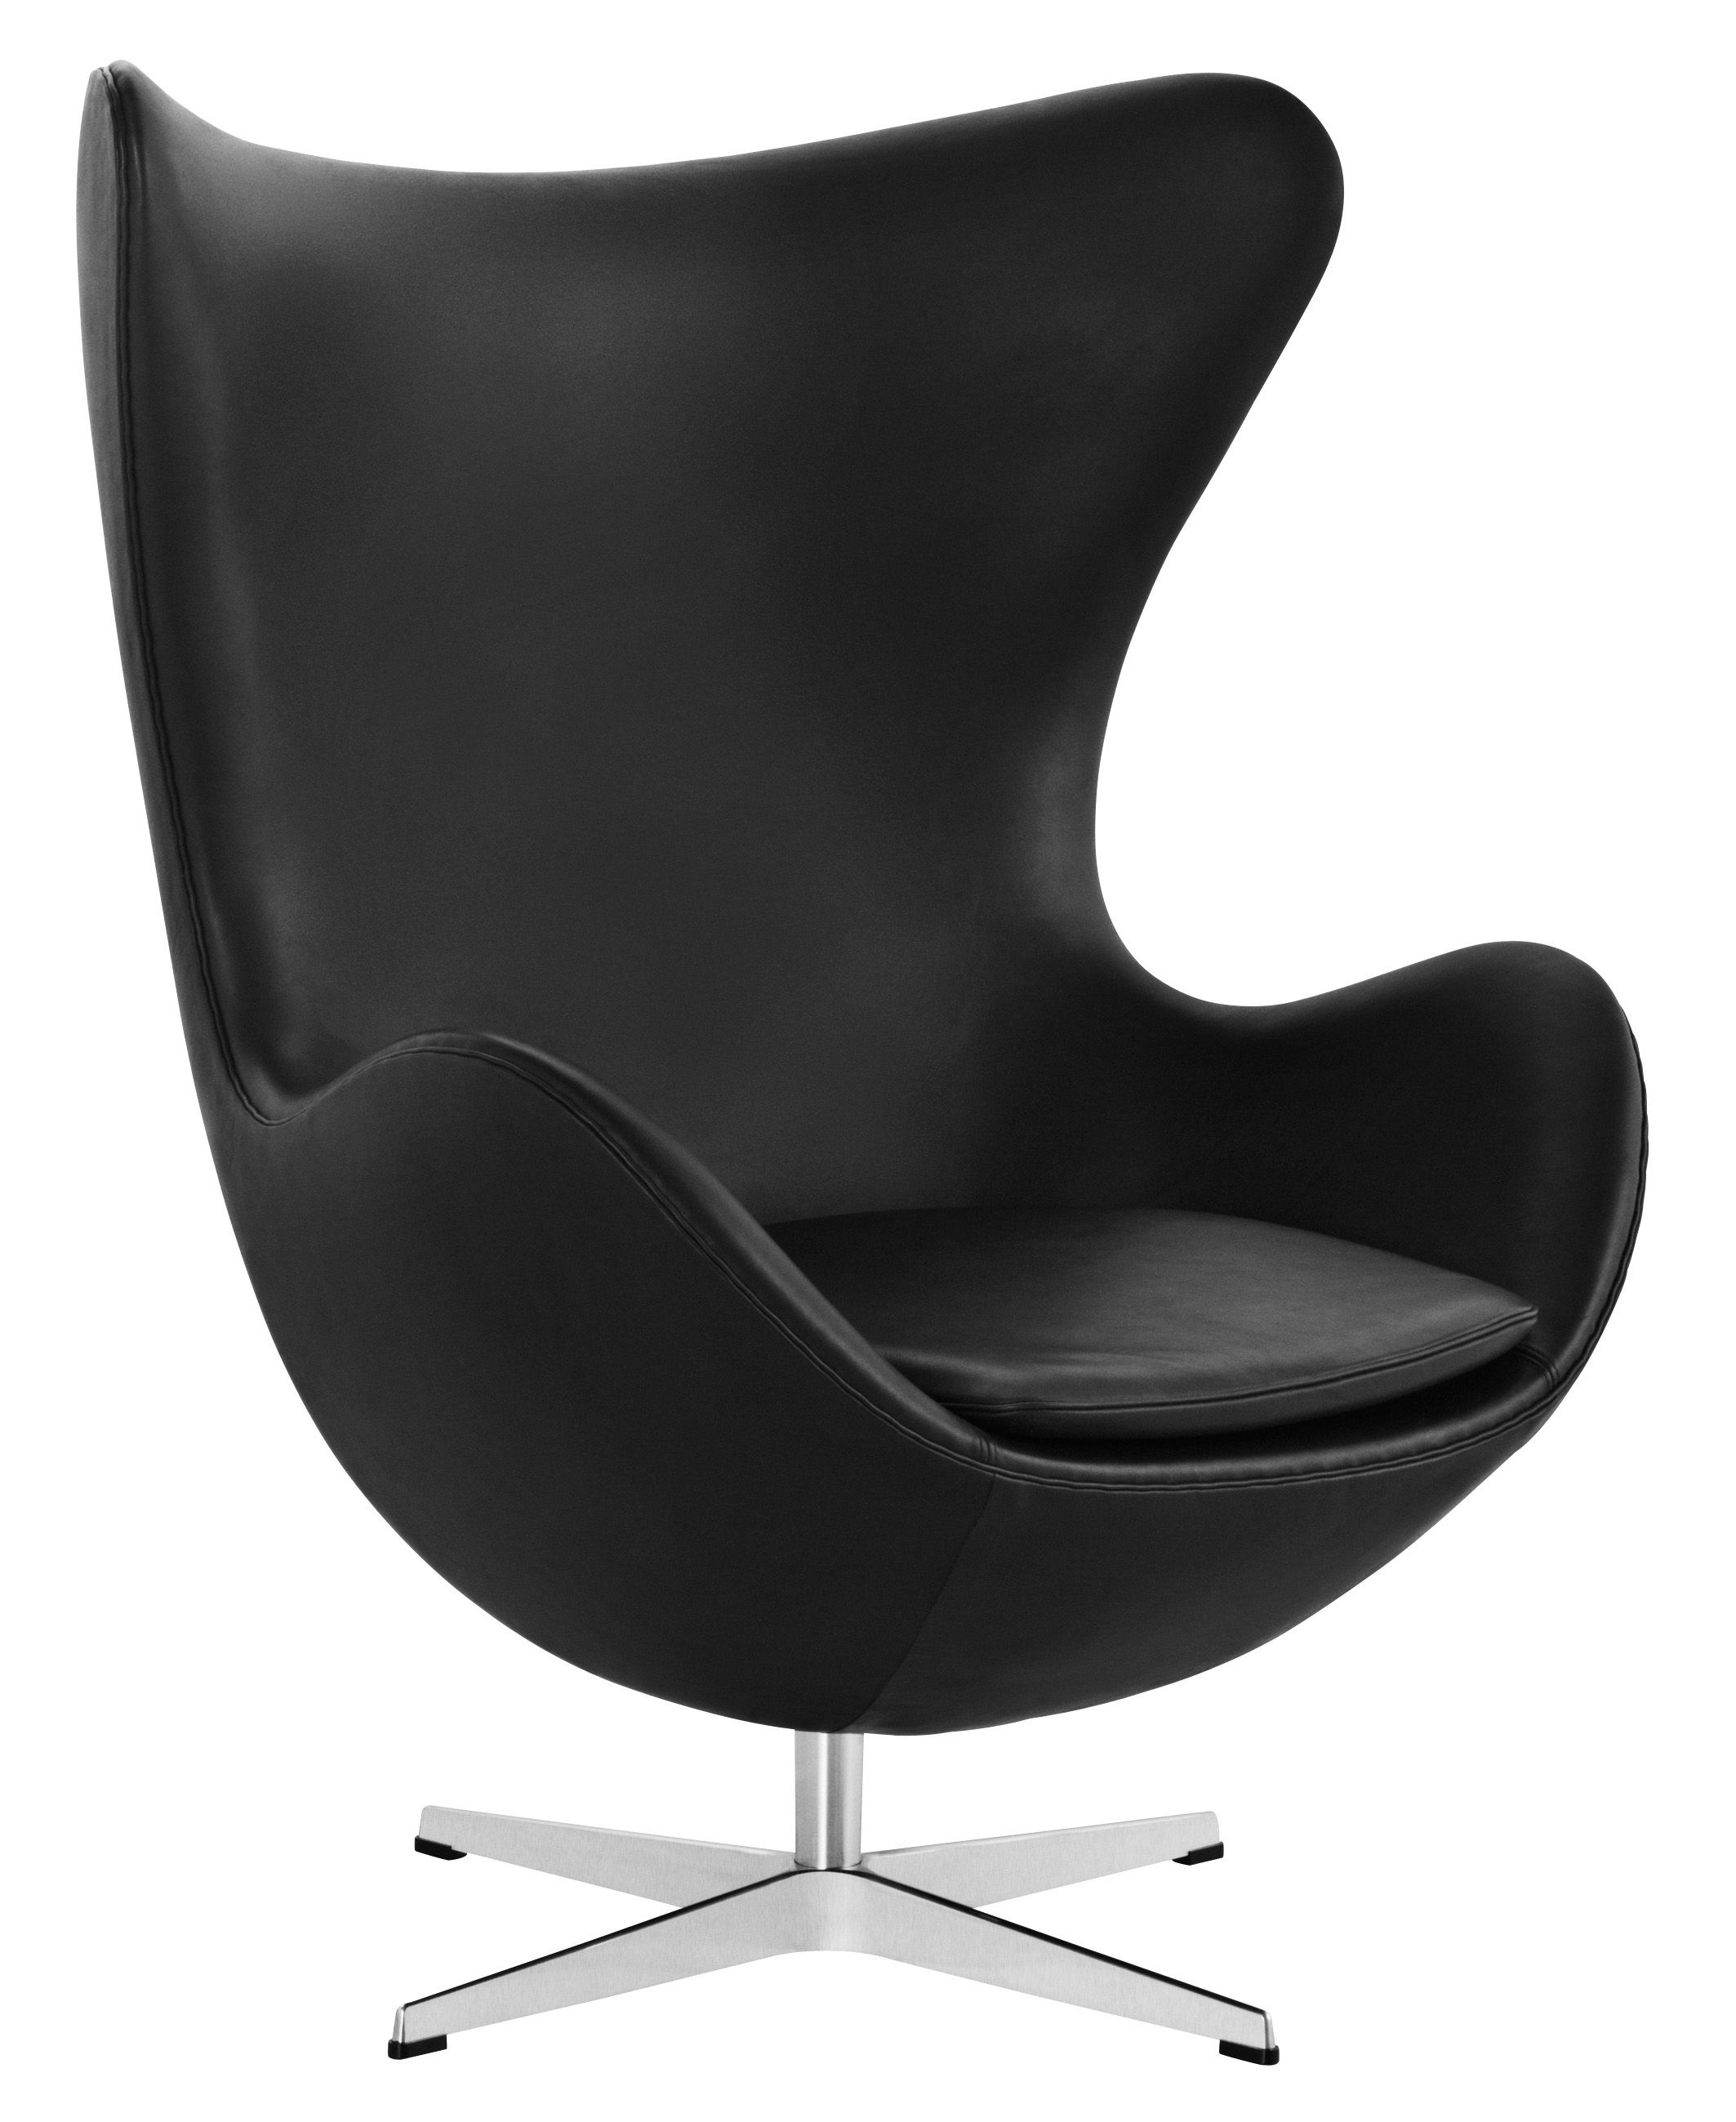 Egg Lounge Sessel Egg Chair Drehsessel Leder Fritz Hansen